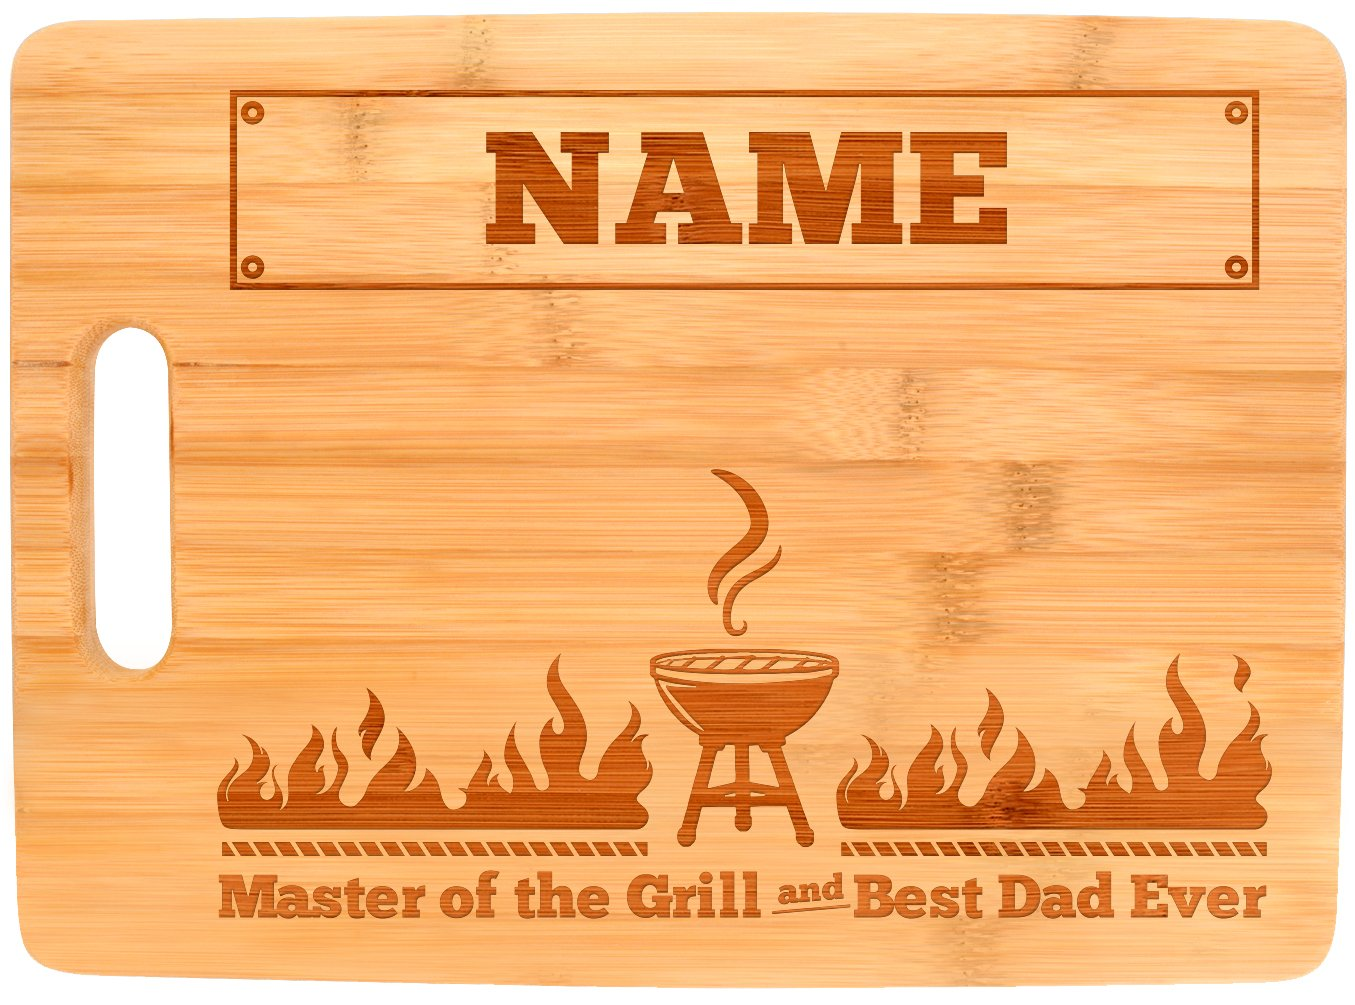 Personalized Grill Gifts Custom Name Master of the Grill and Best Dad Ever Personalized Fathers Day Gifts from Daughter Father Son Gifts Dad Grill Big Rectangle Bamboo Personalized Cutting Board by Personalized Gifts (Image #4)